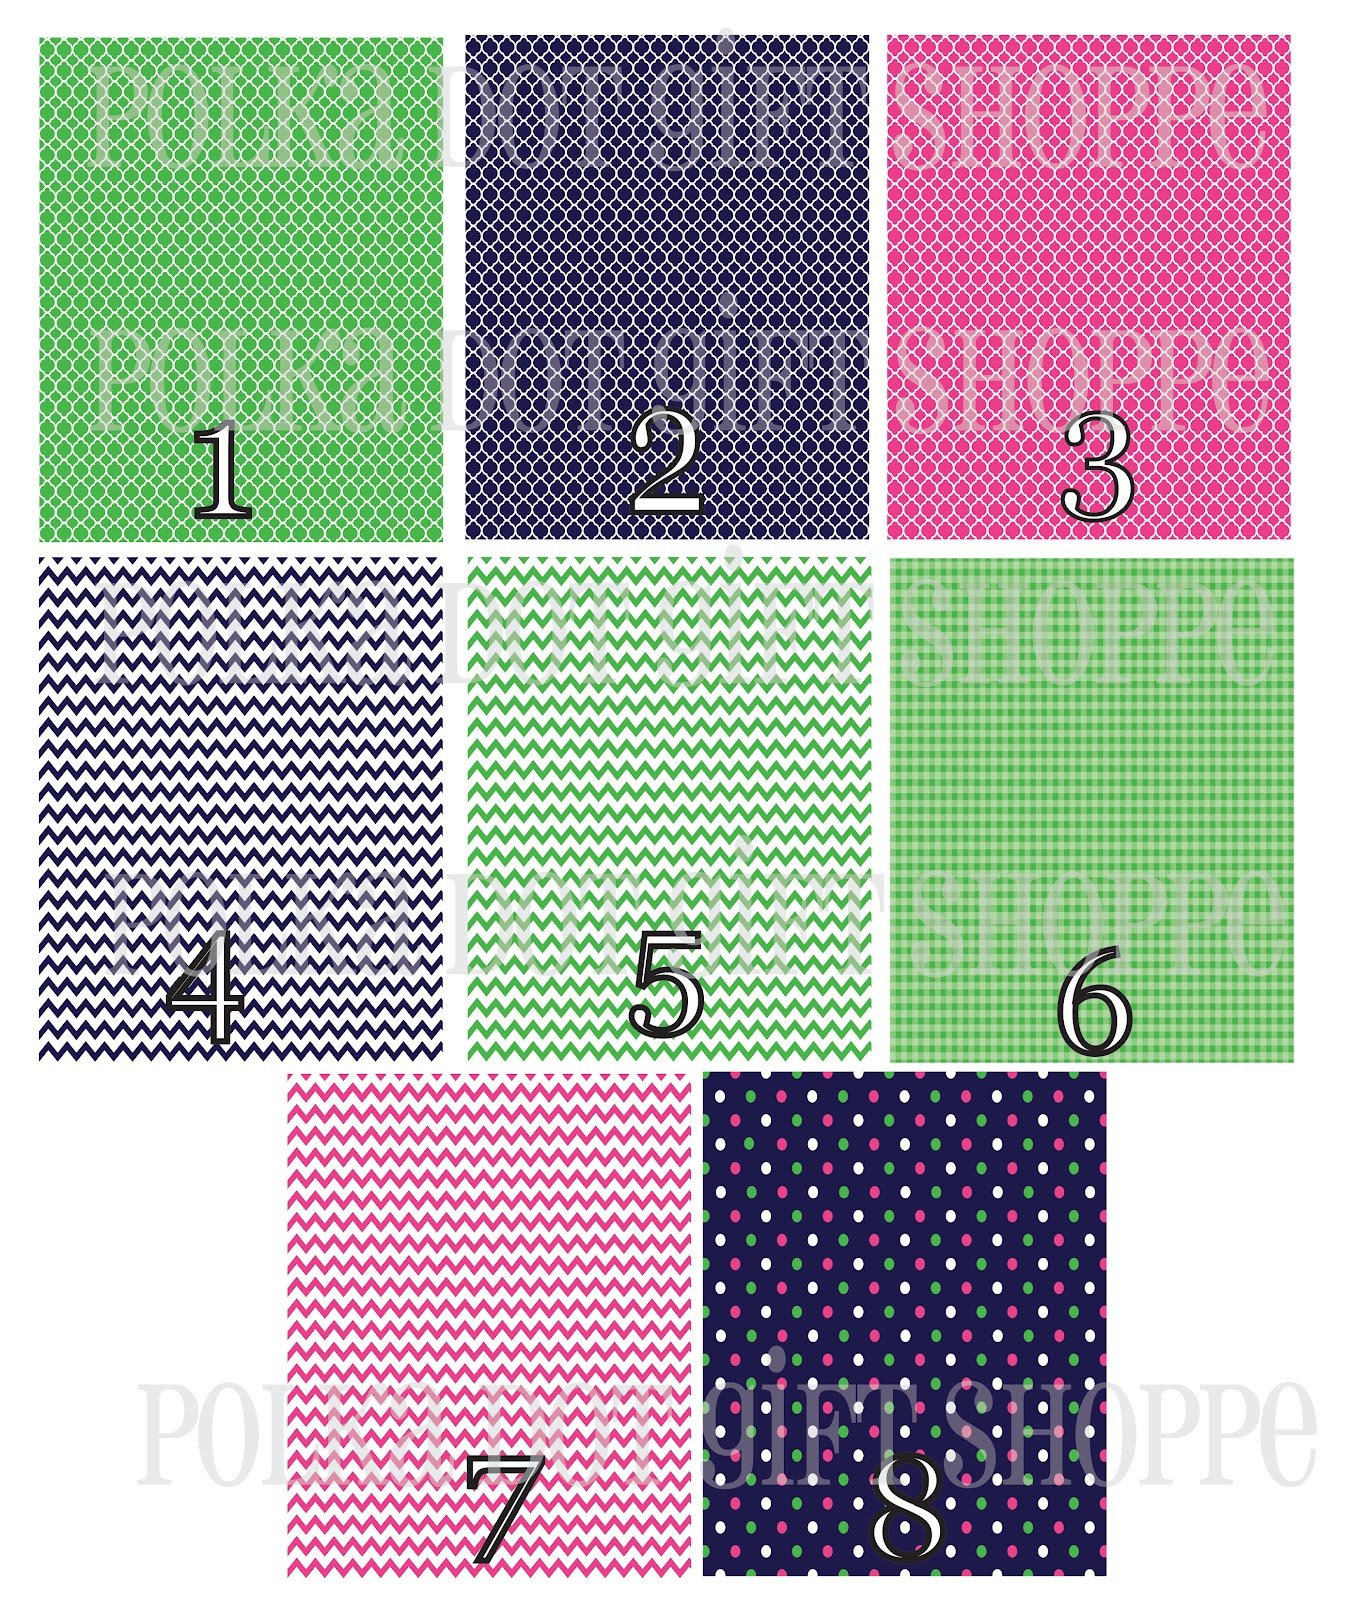 Preppy iPhone Wallpaper - WallpaperSafari